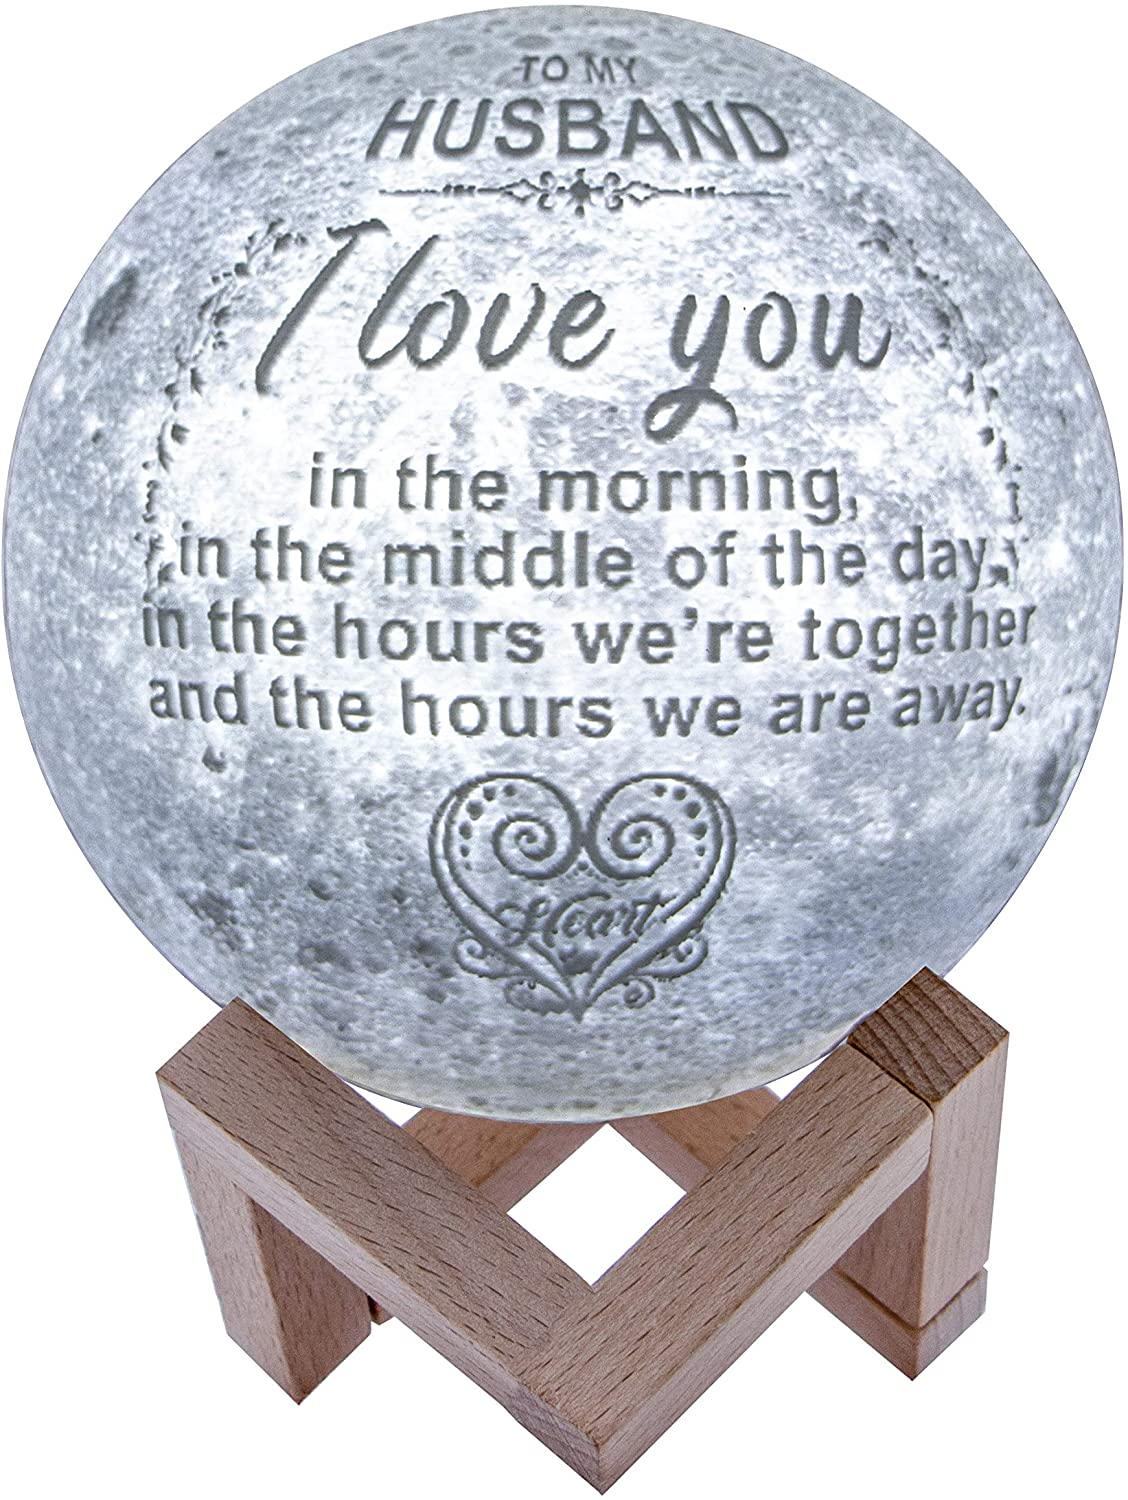 Engraved 3D Moon Lamp for Husband,Personalized 5.9 Inch 3D Printing Moon Light Gift for Husband Valentine's Christmas Gift (for Husband)